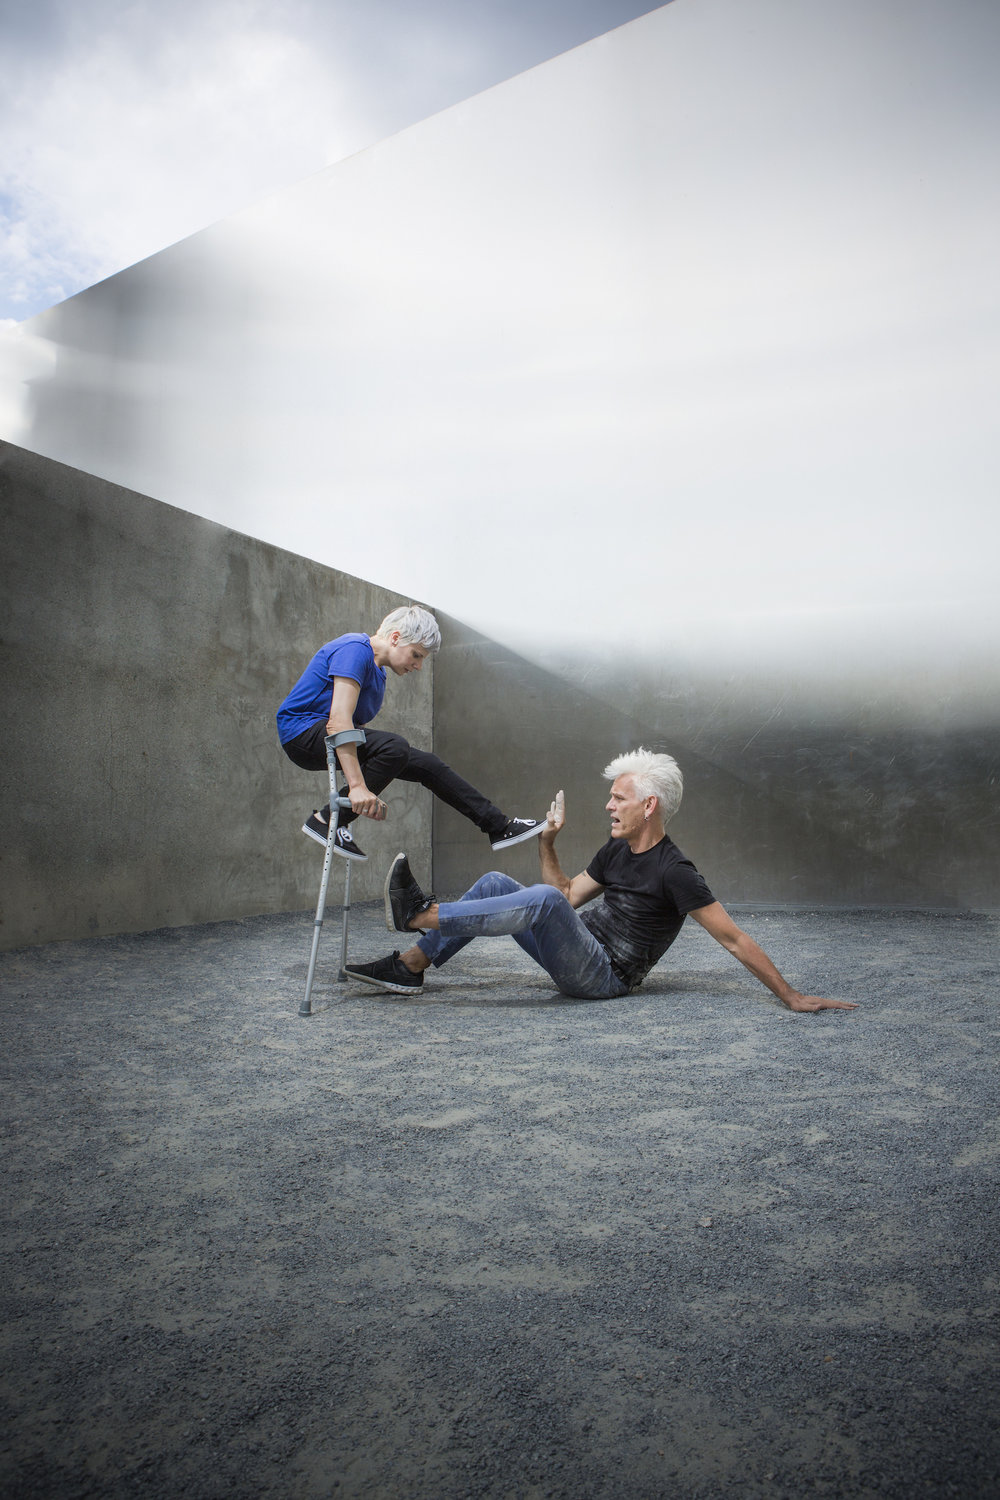 Spare, cement-walled outdoor space under blue sky. Cunningham balances between crutches, presses one foot against Curtis' hand. Curtis sits. (photo: Sven Hagolani)